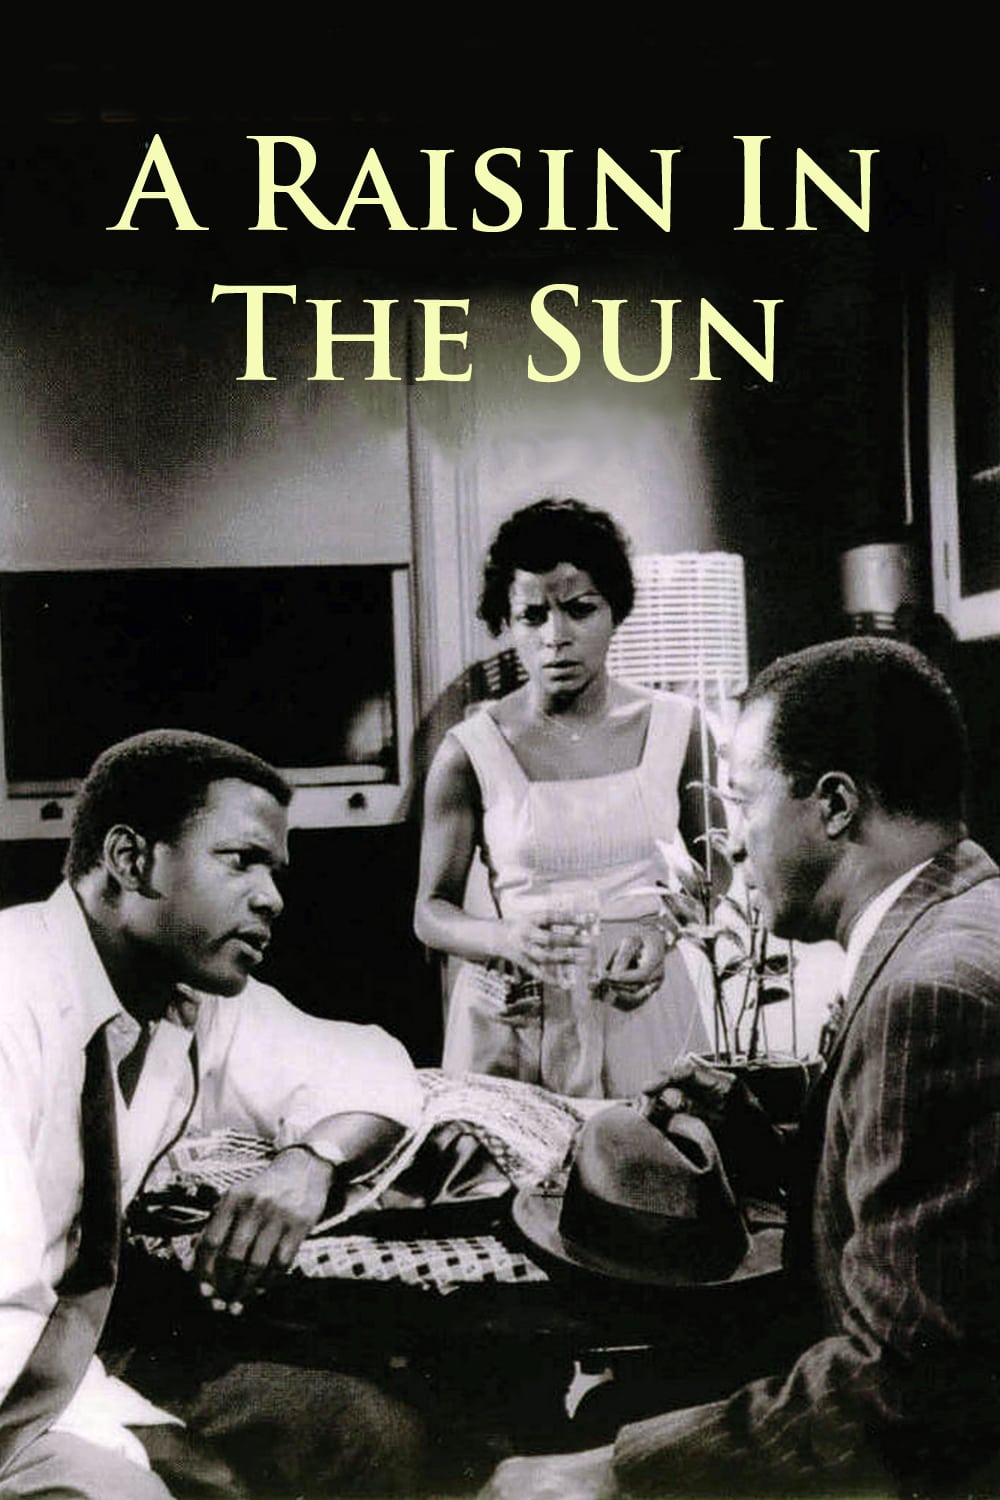 an examination of the film a raisin in the sun A raisin in the sun skip navigation tcm in a manner that simply isn't possible while making a conventionally produced film daniel petrie's a raisin in the sun.